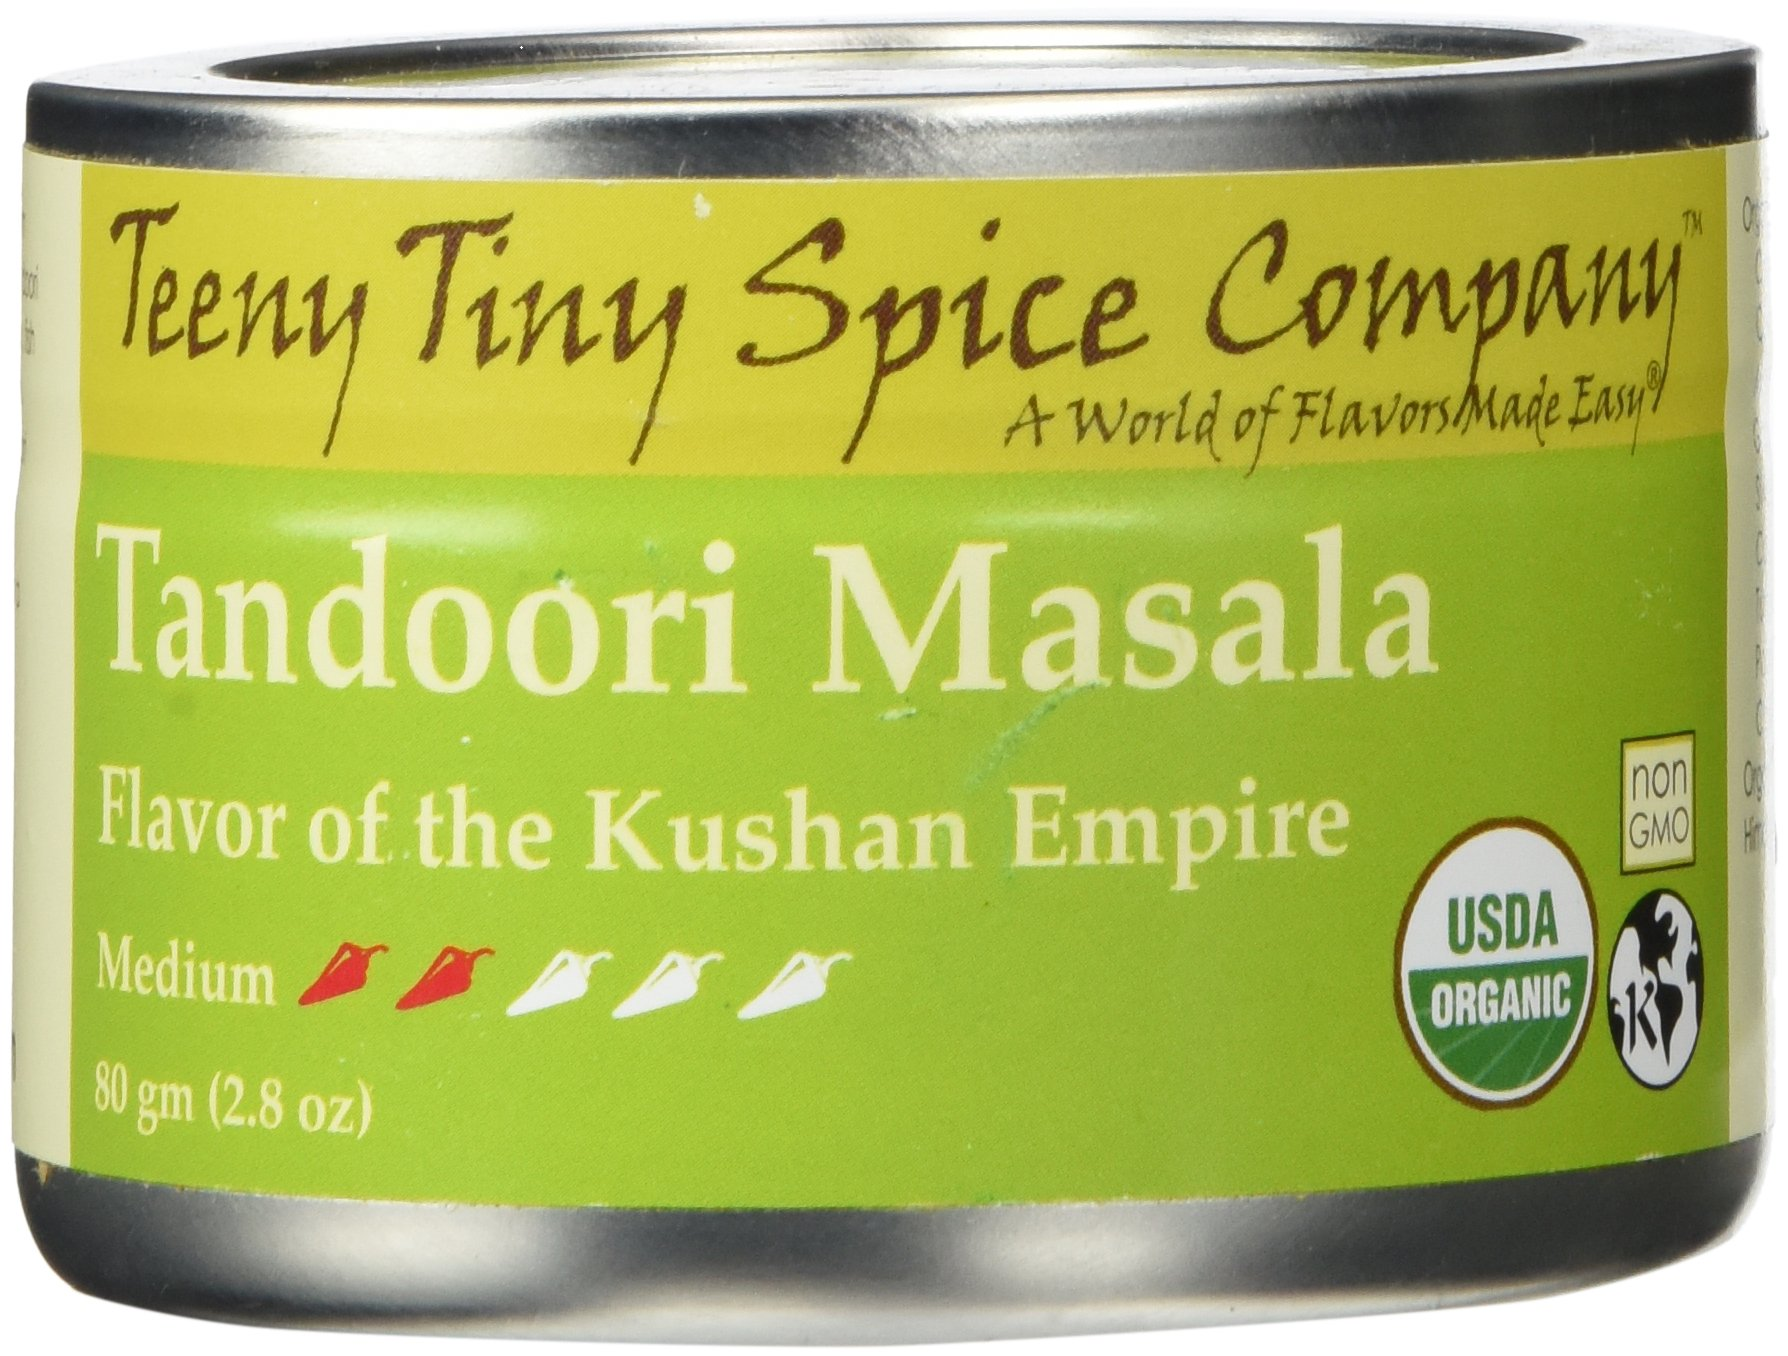 Teeny Tiny Spice Co. of Vermont Organic Tandoori Masala, 2.8 Oz